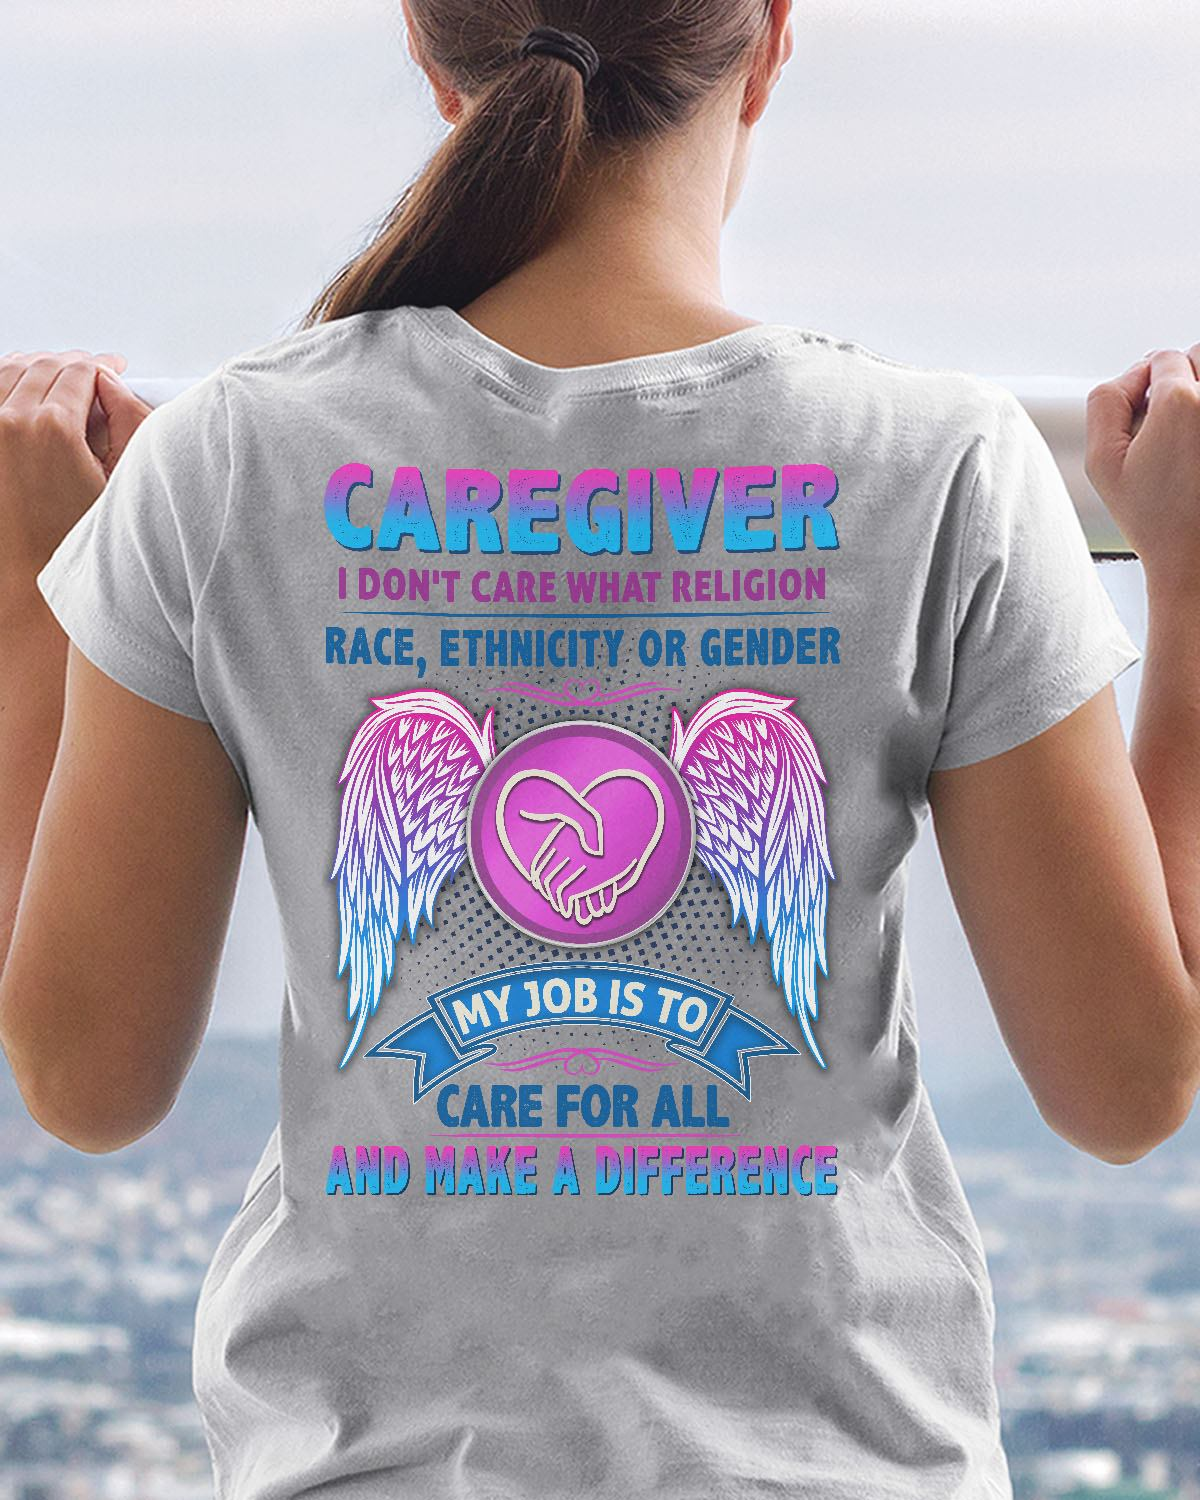 Caregiver I don't care what religion race ethnicity or gender shirt